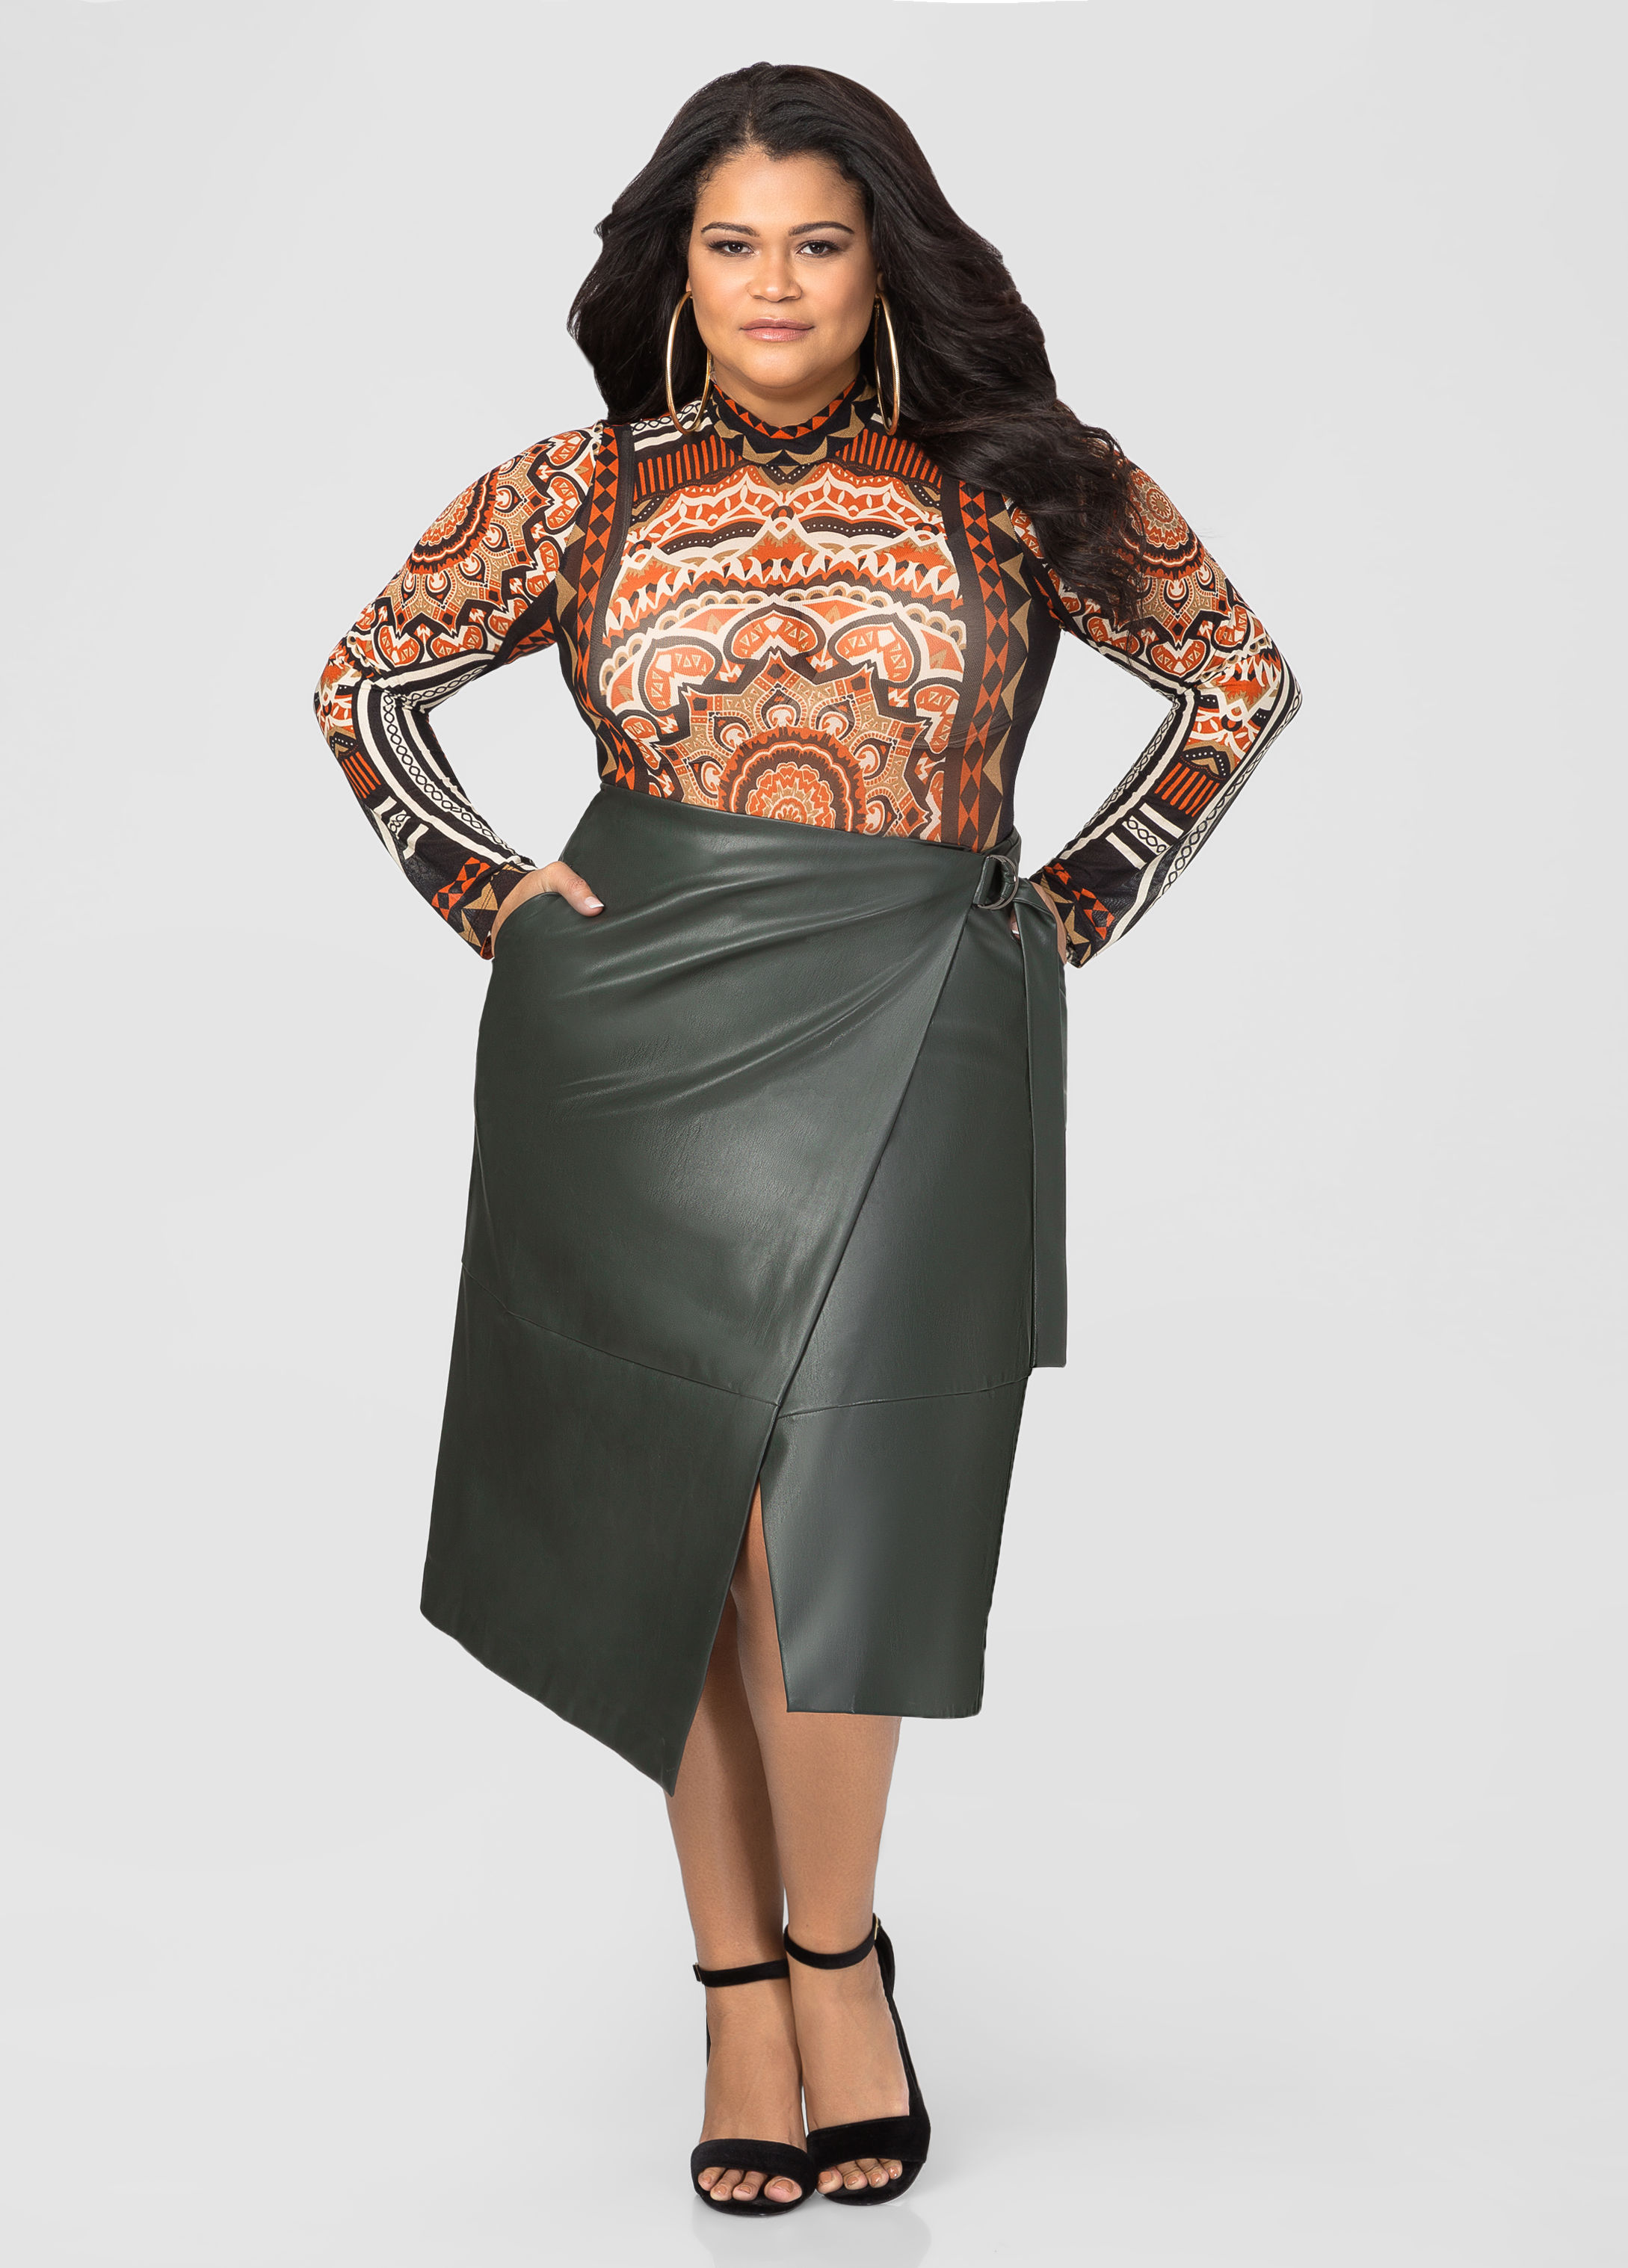 Nordstrom Leather Skirt | Faux Leather Skirt | Faux Leather Bodycon Skirt